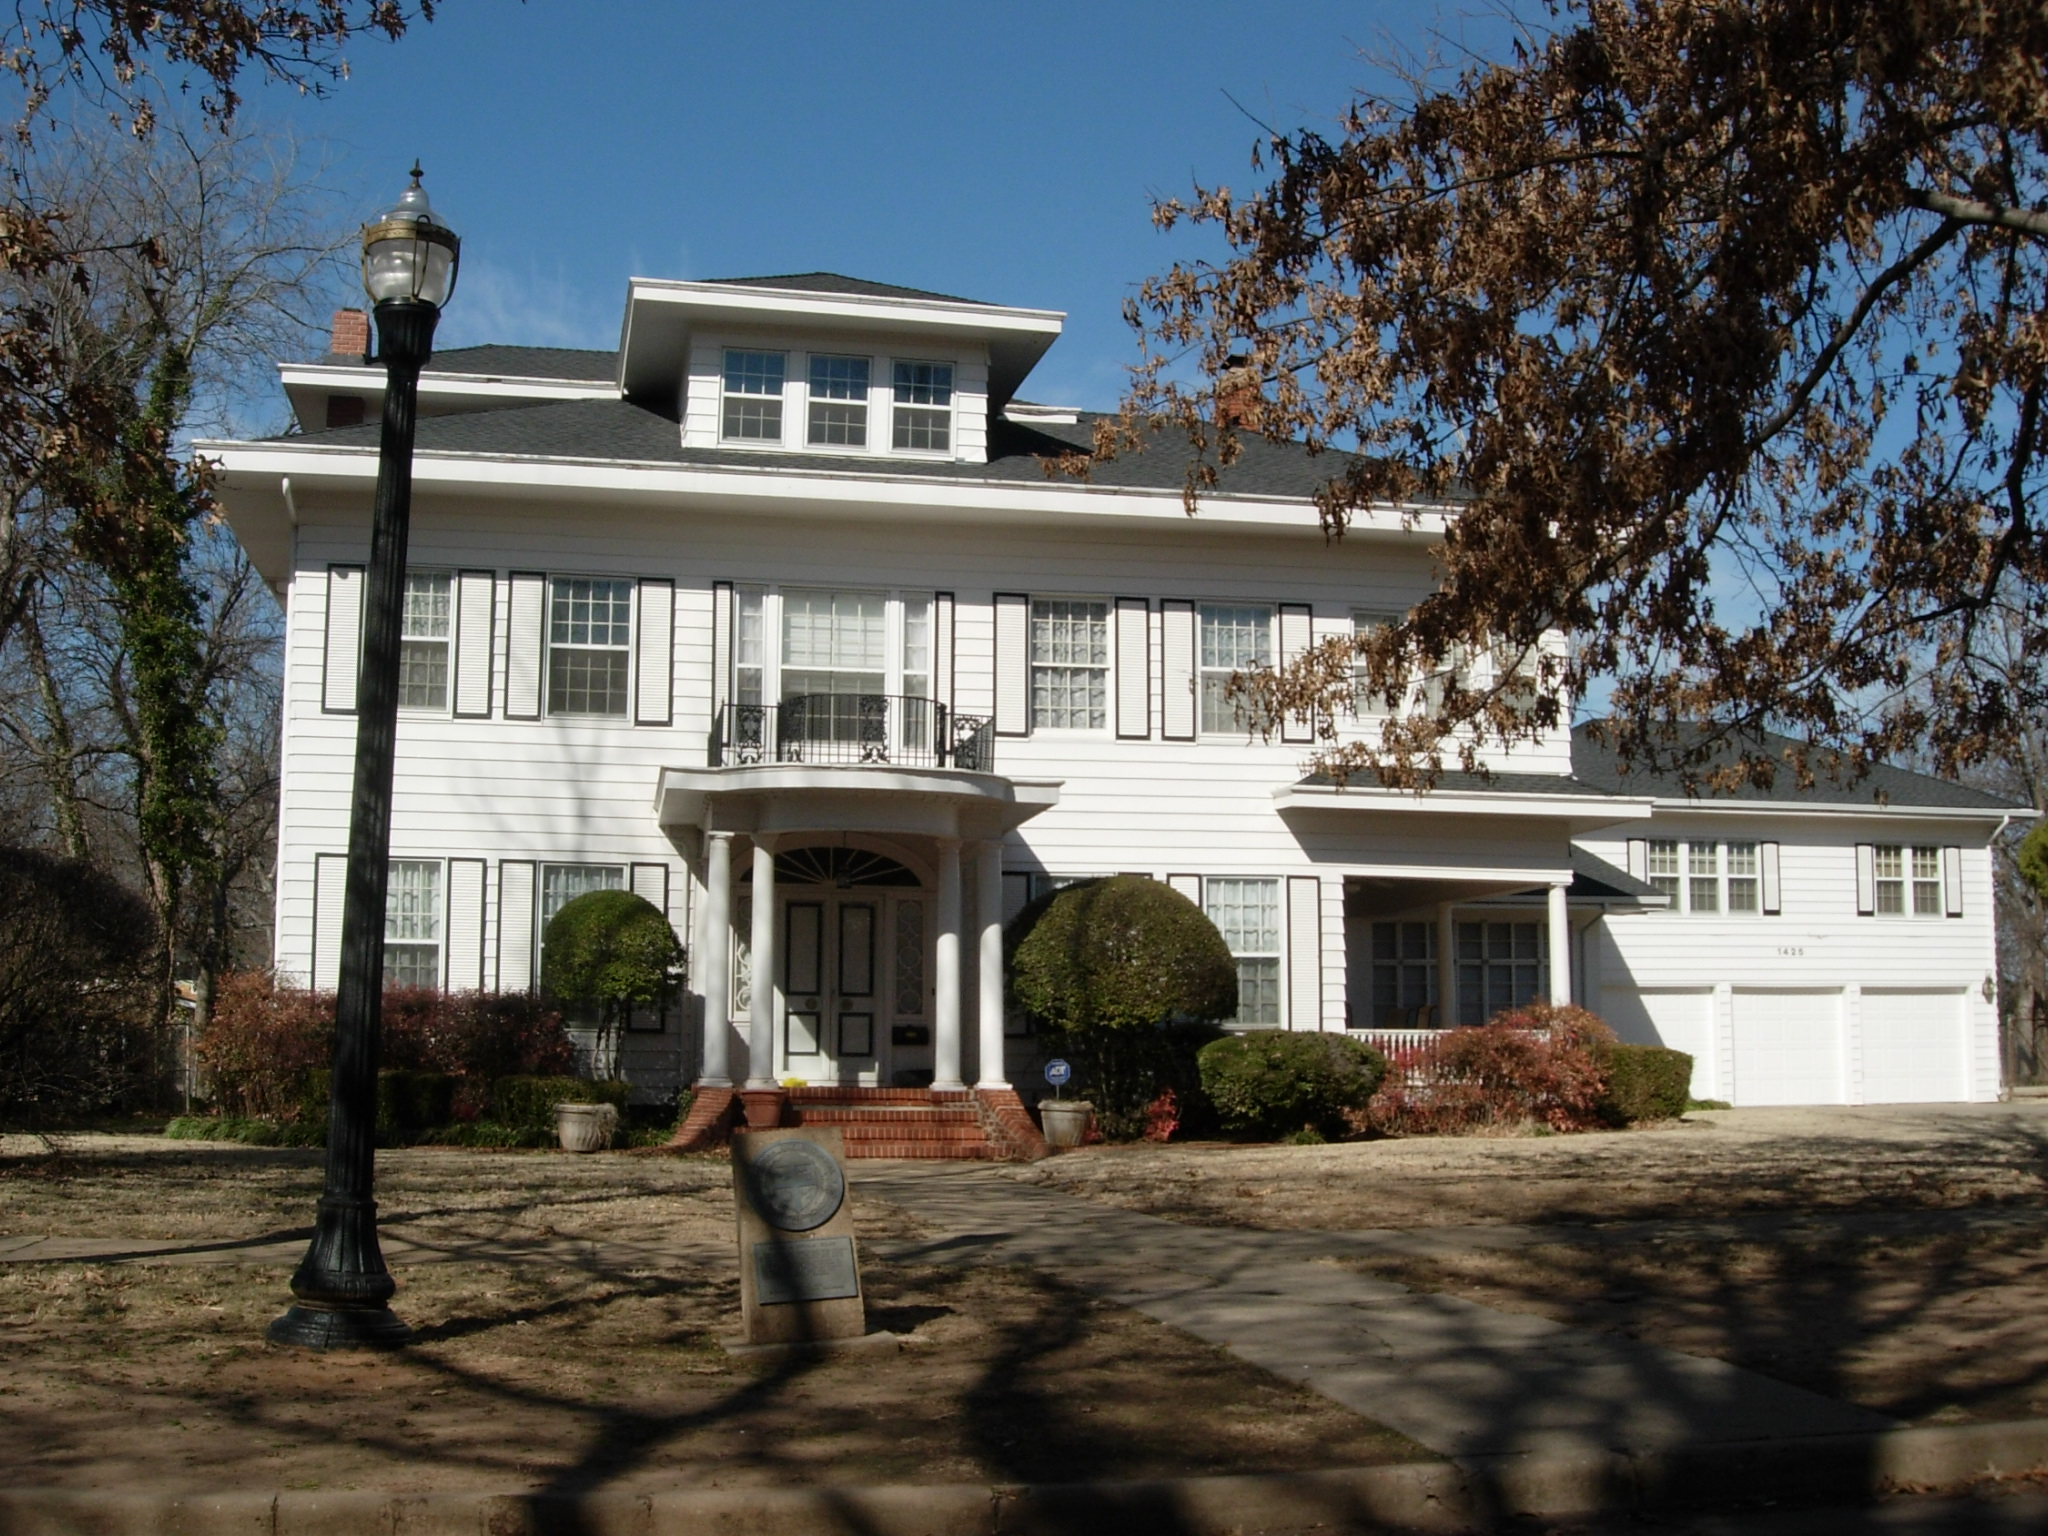 1000 images about historic oklahoma mansion and houses on pinterest mansions the heritage. Black Bedroom Furniture Sets. Home Design Ideas